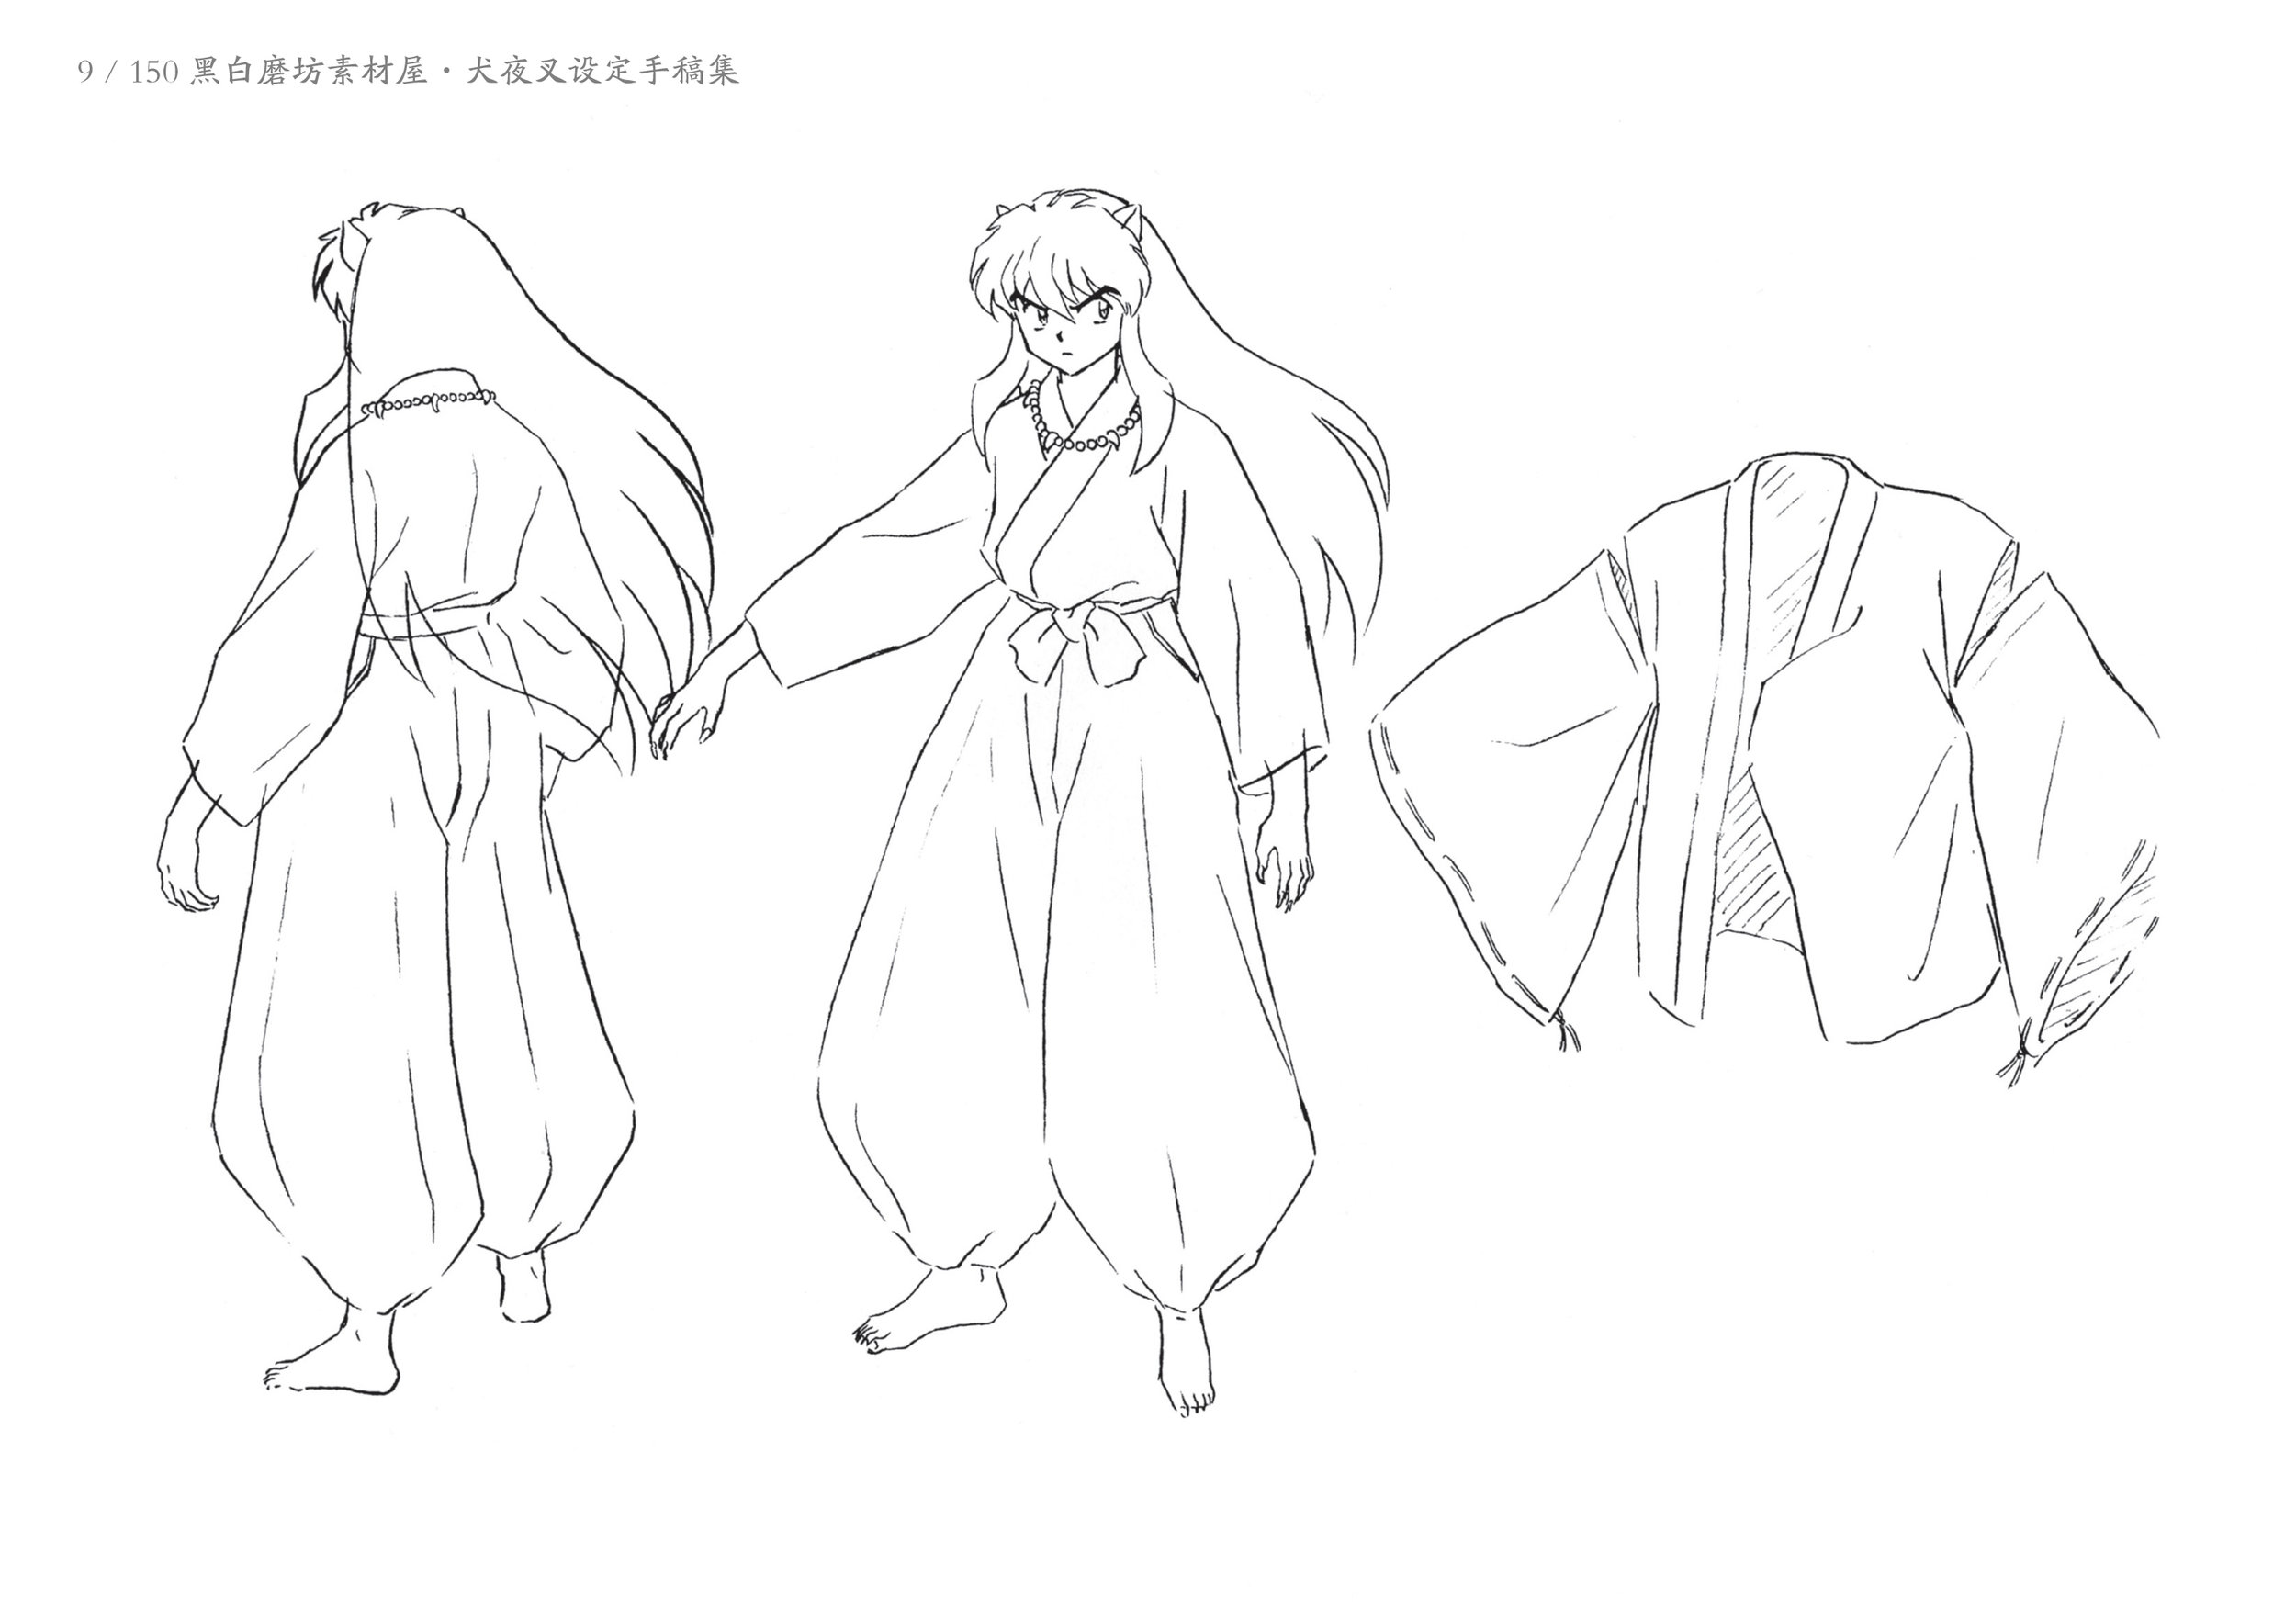 Art of the Inuyasha A - 9.jpg